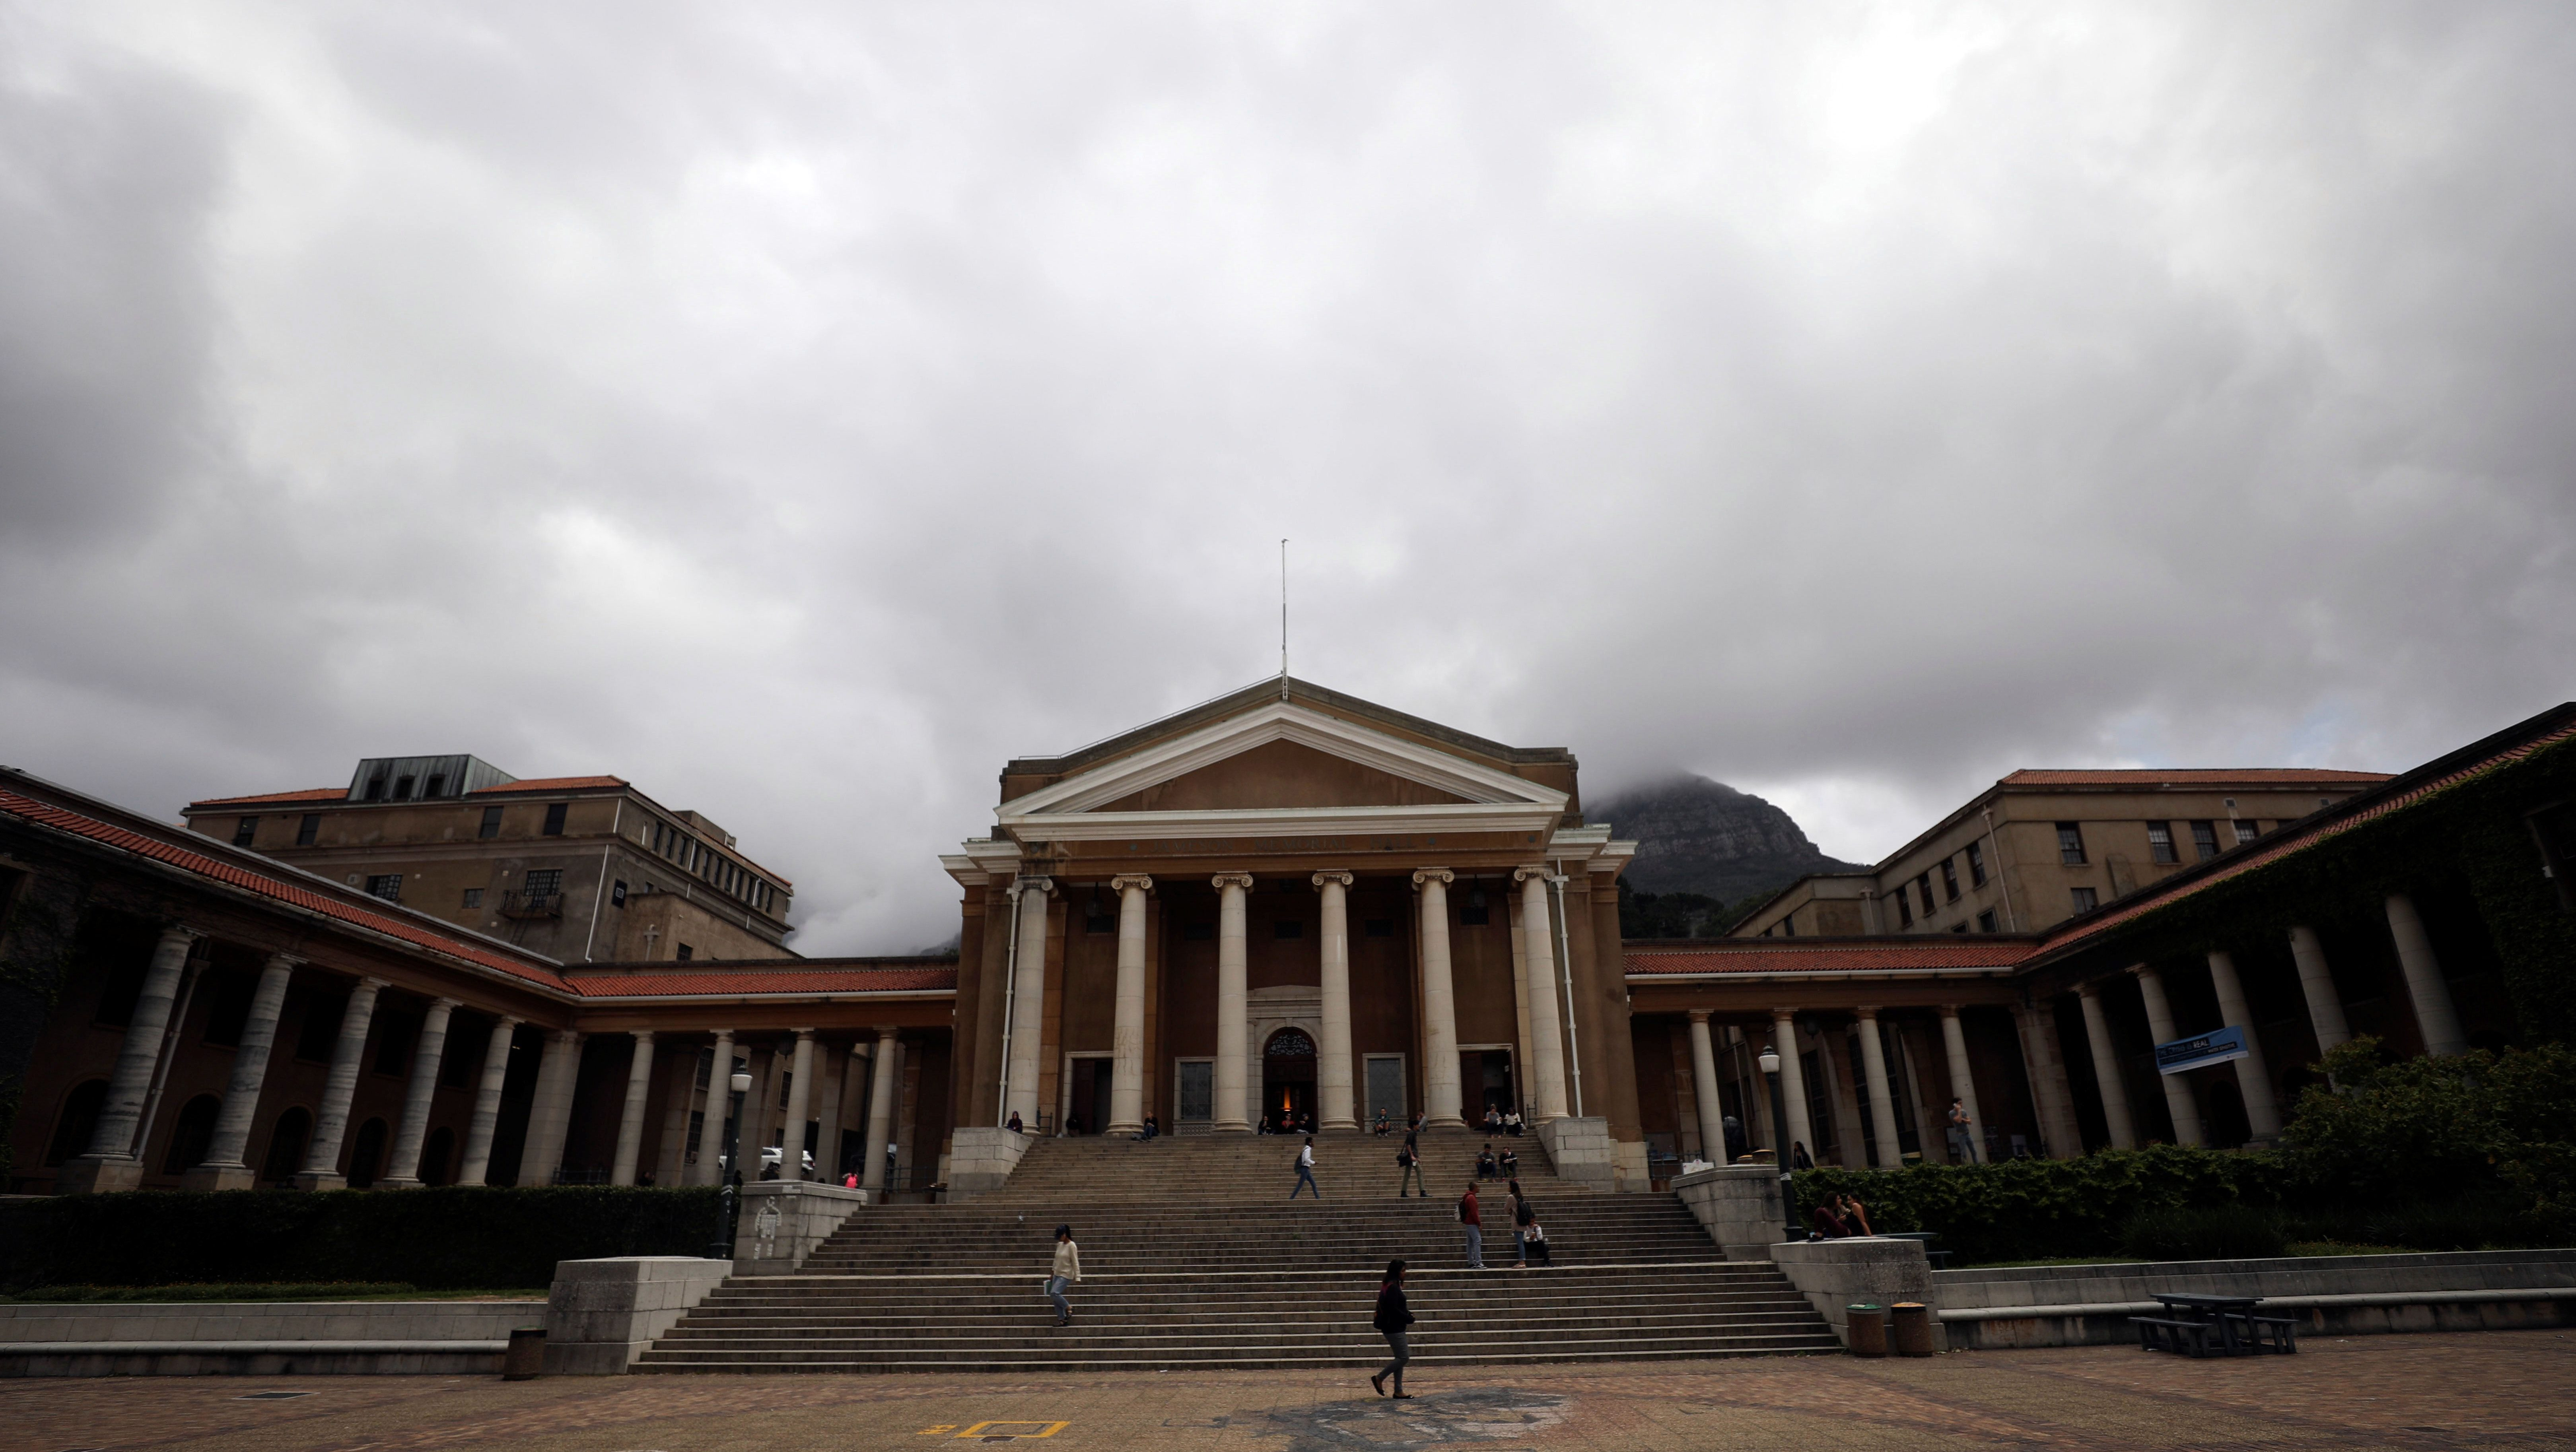 Students walk accross a plaza in front of the University of Cape Town in Cape Town